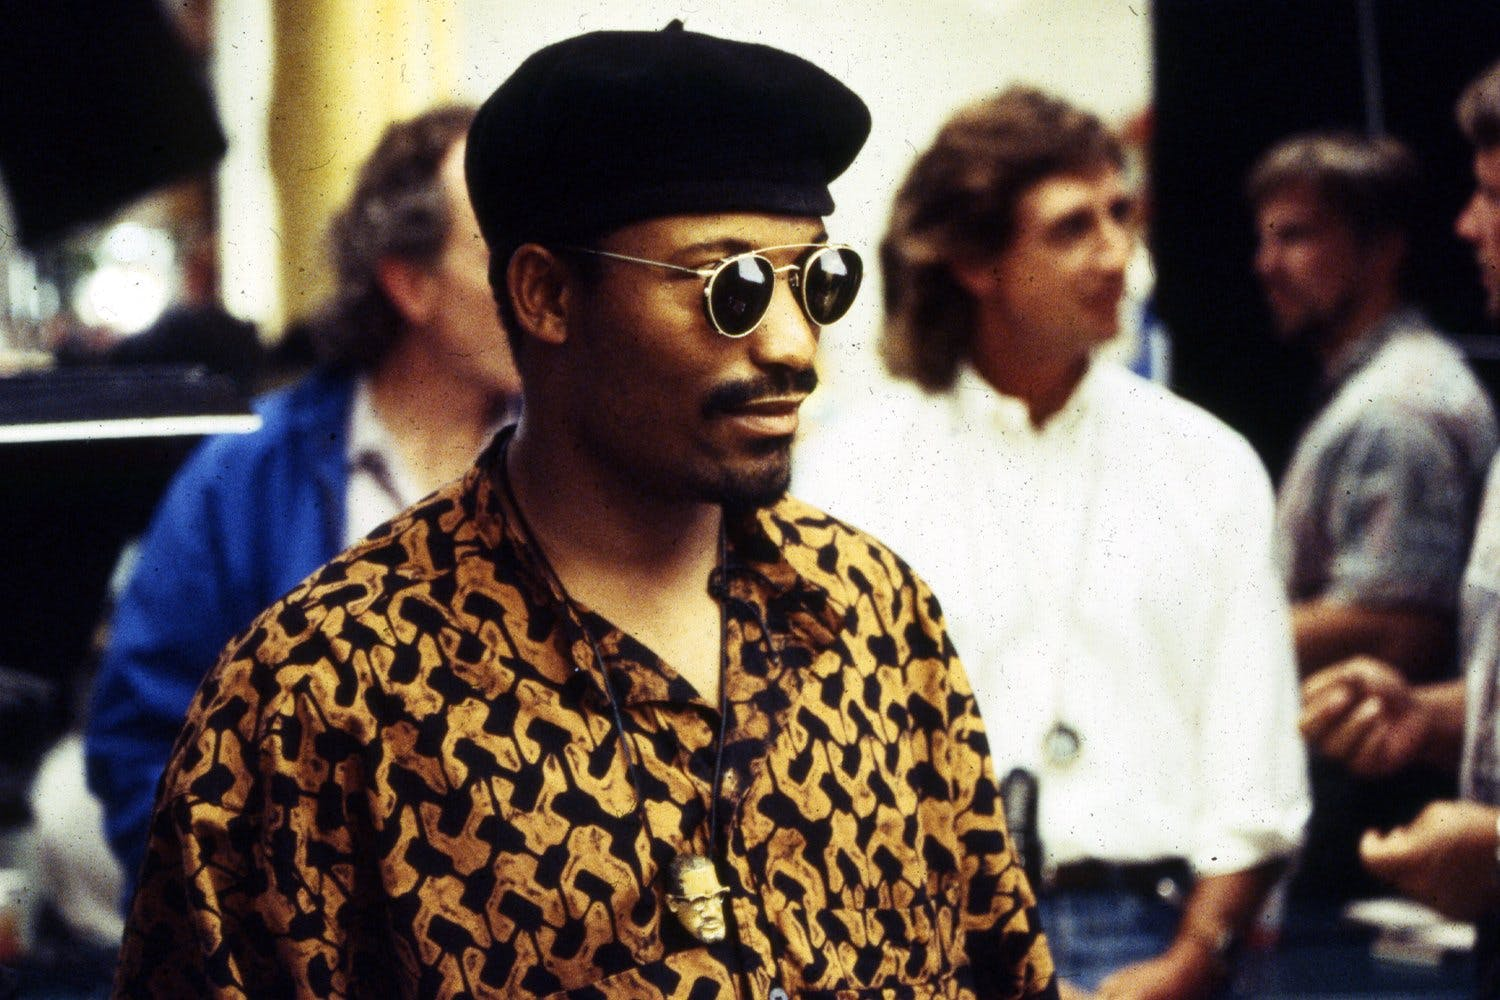 View of director John Singleton, wearing sunglasses and beret, while on the set of his movie 'Poetic Justice', Los Angeles, CA, 1993.